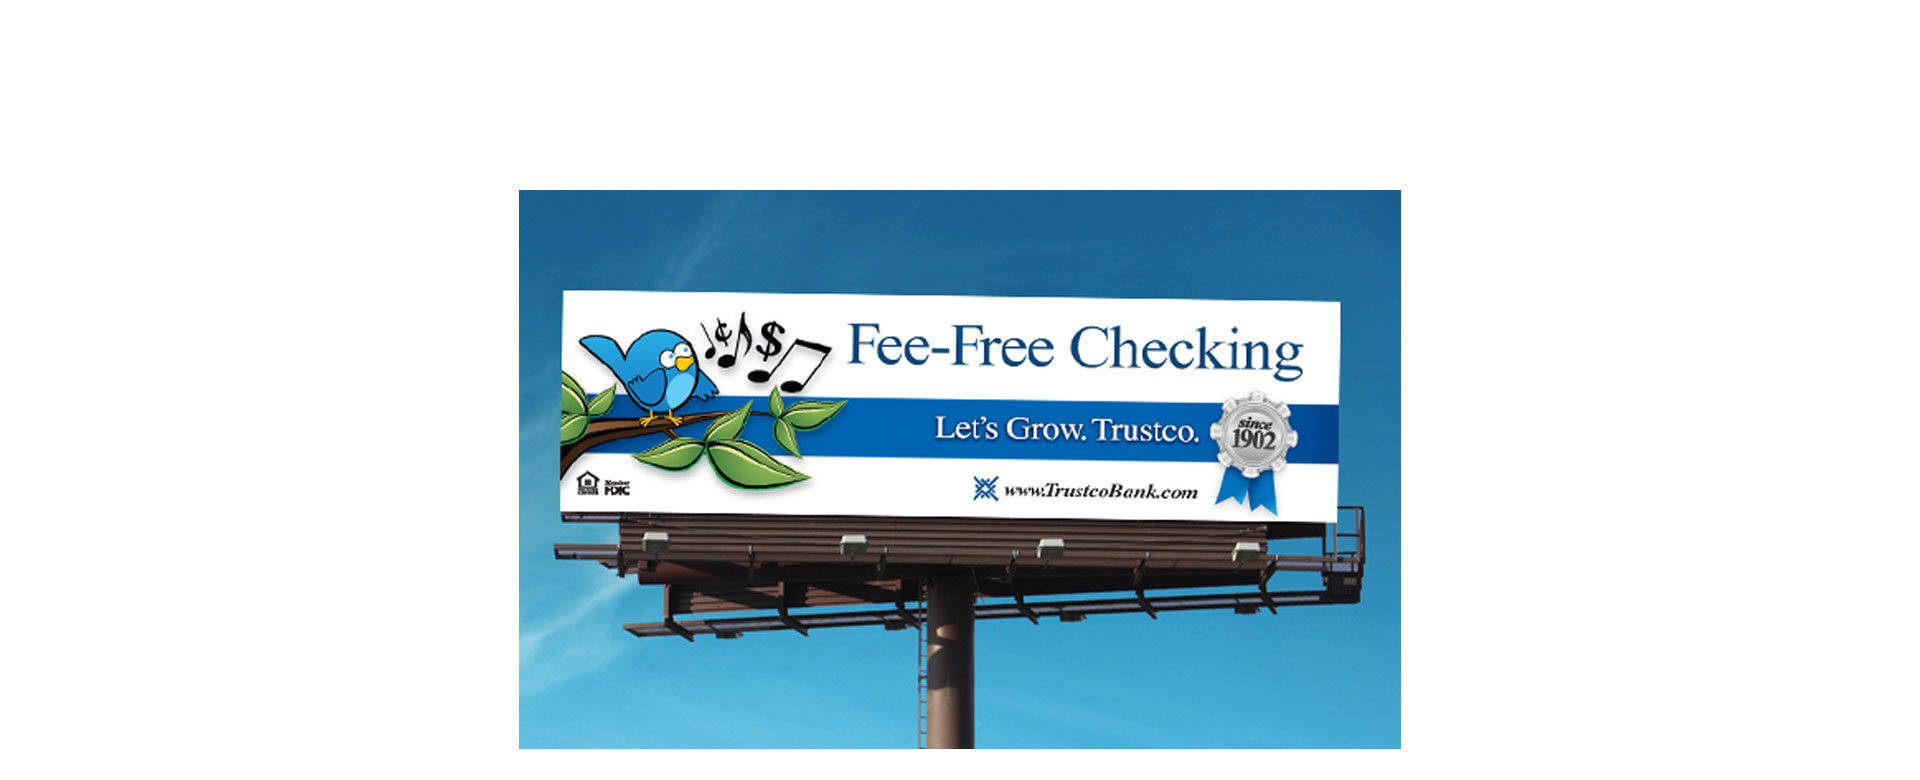 Fee-Free Checking Outdoor Campaign